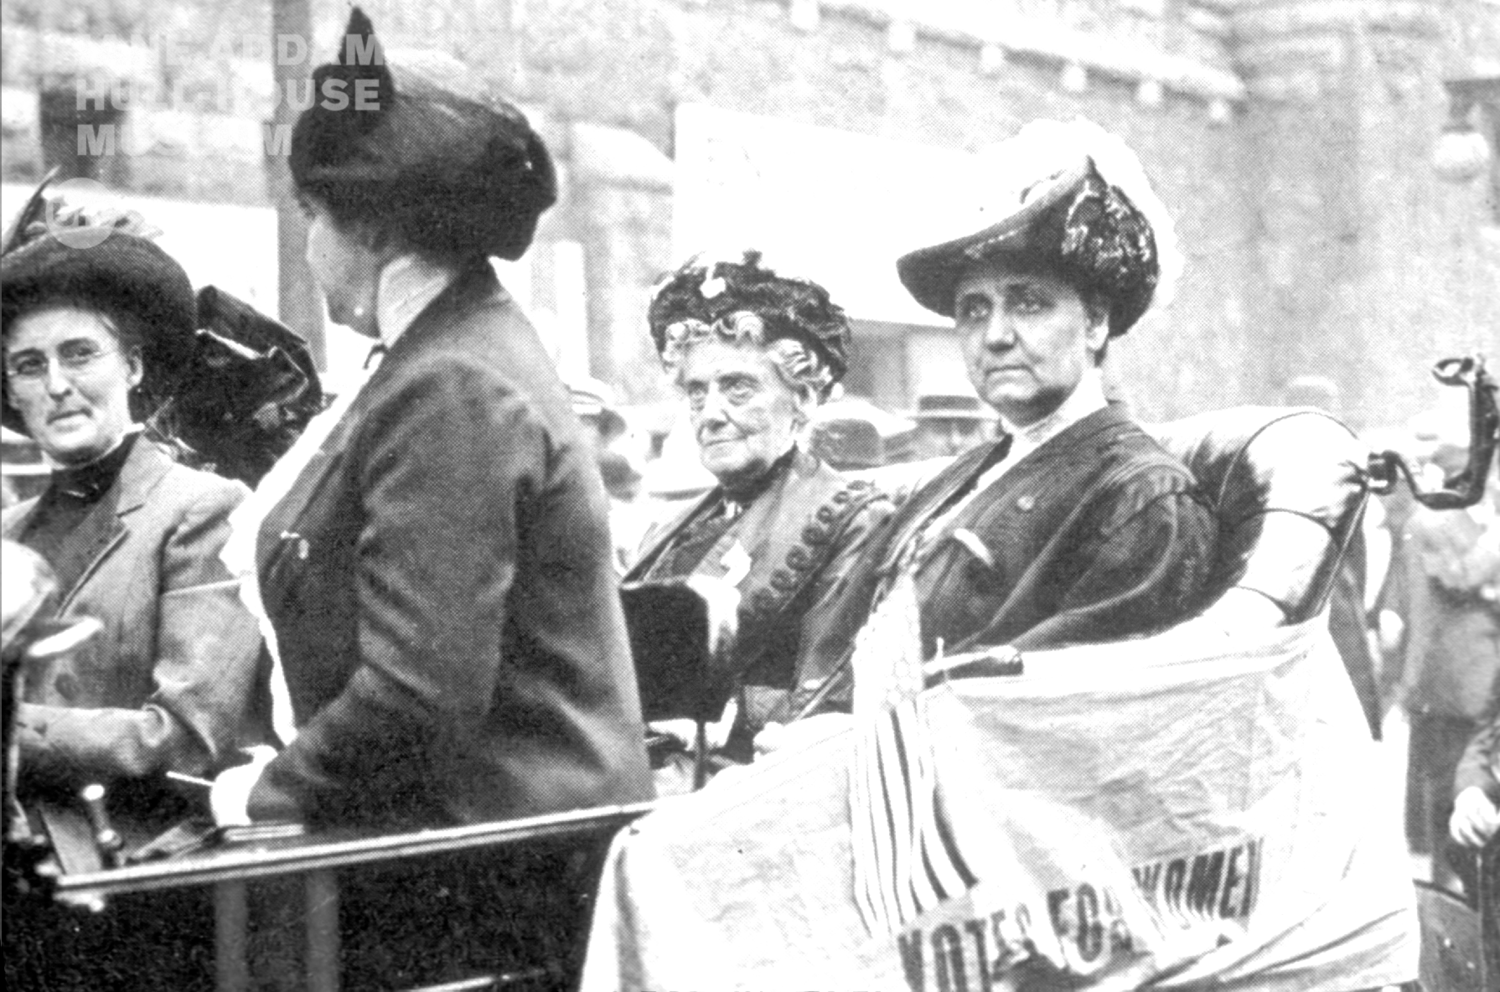 "Jane Addams, seated in back on the left of the image, demonstrates with REPUBLICAN convention delegates during the 1912 Republican Party convention in chicago. The banner on the car reads, ""VOtes for women"""